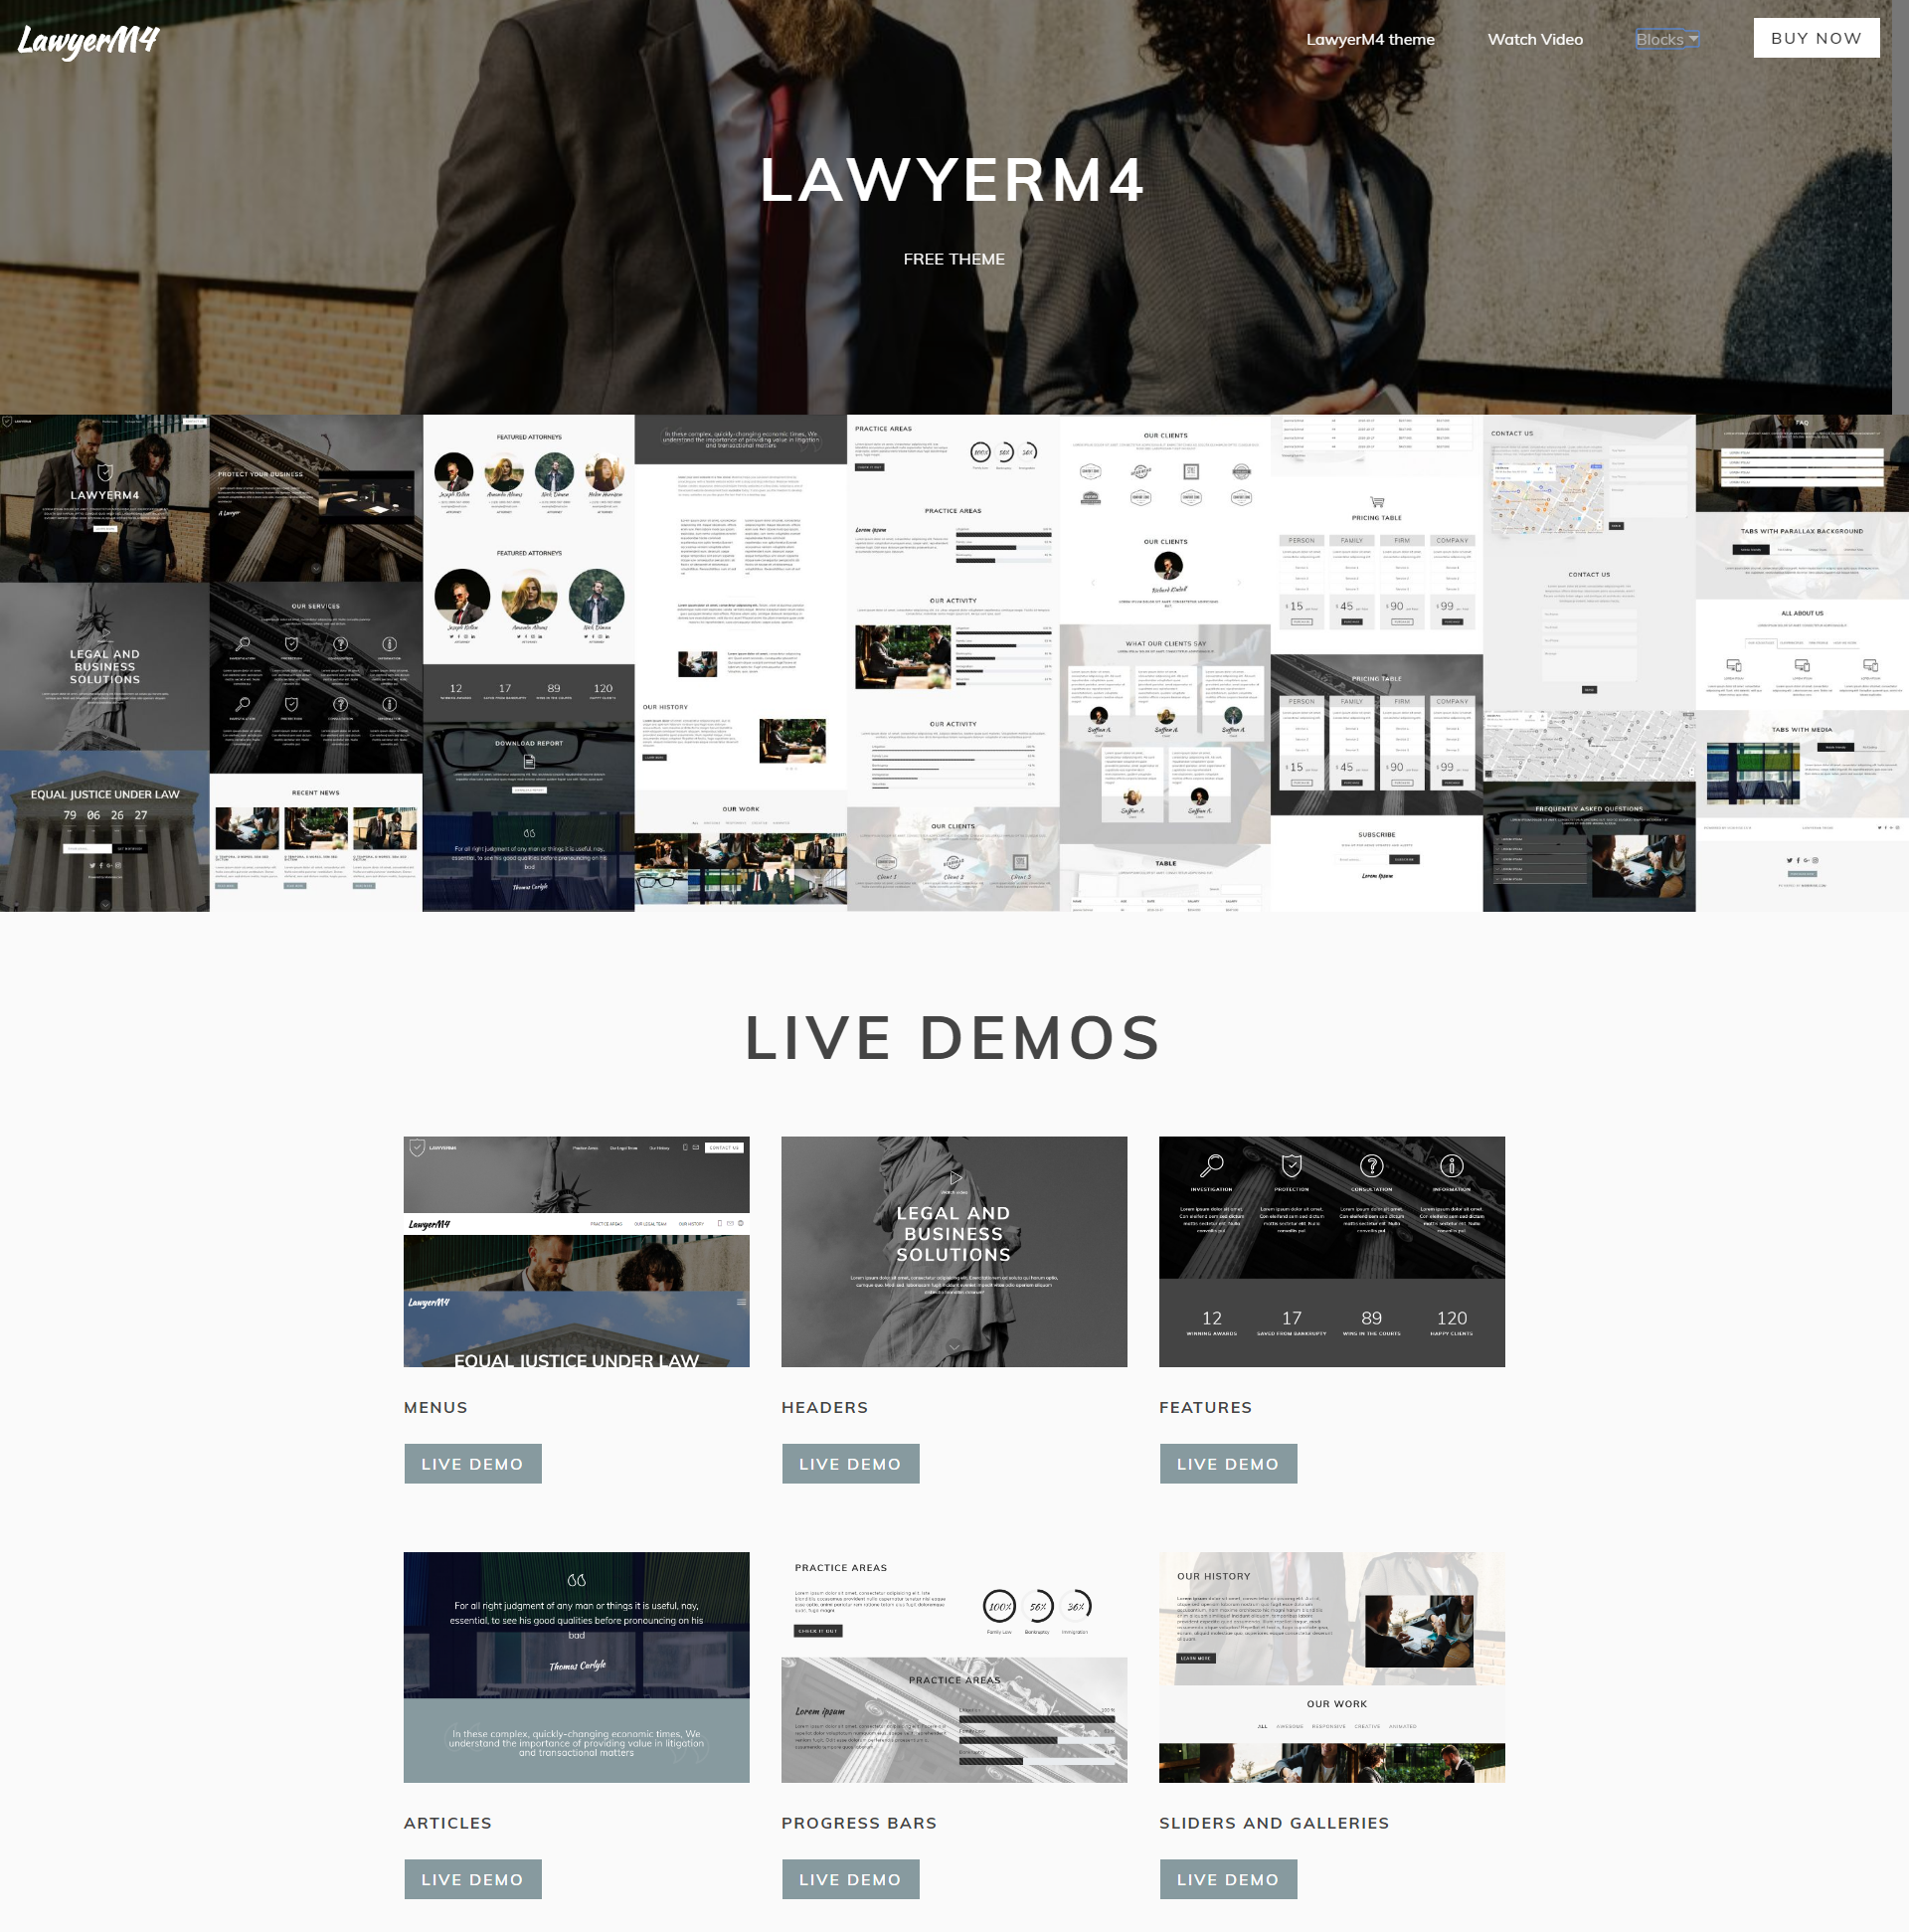 HTML5 Bootstrap LawyerM4 Templates